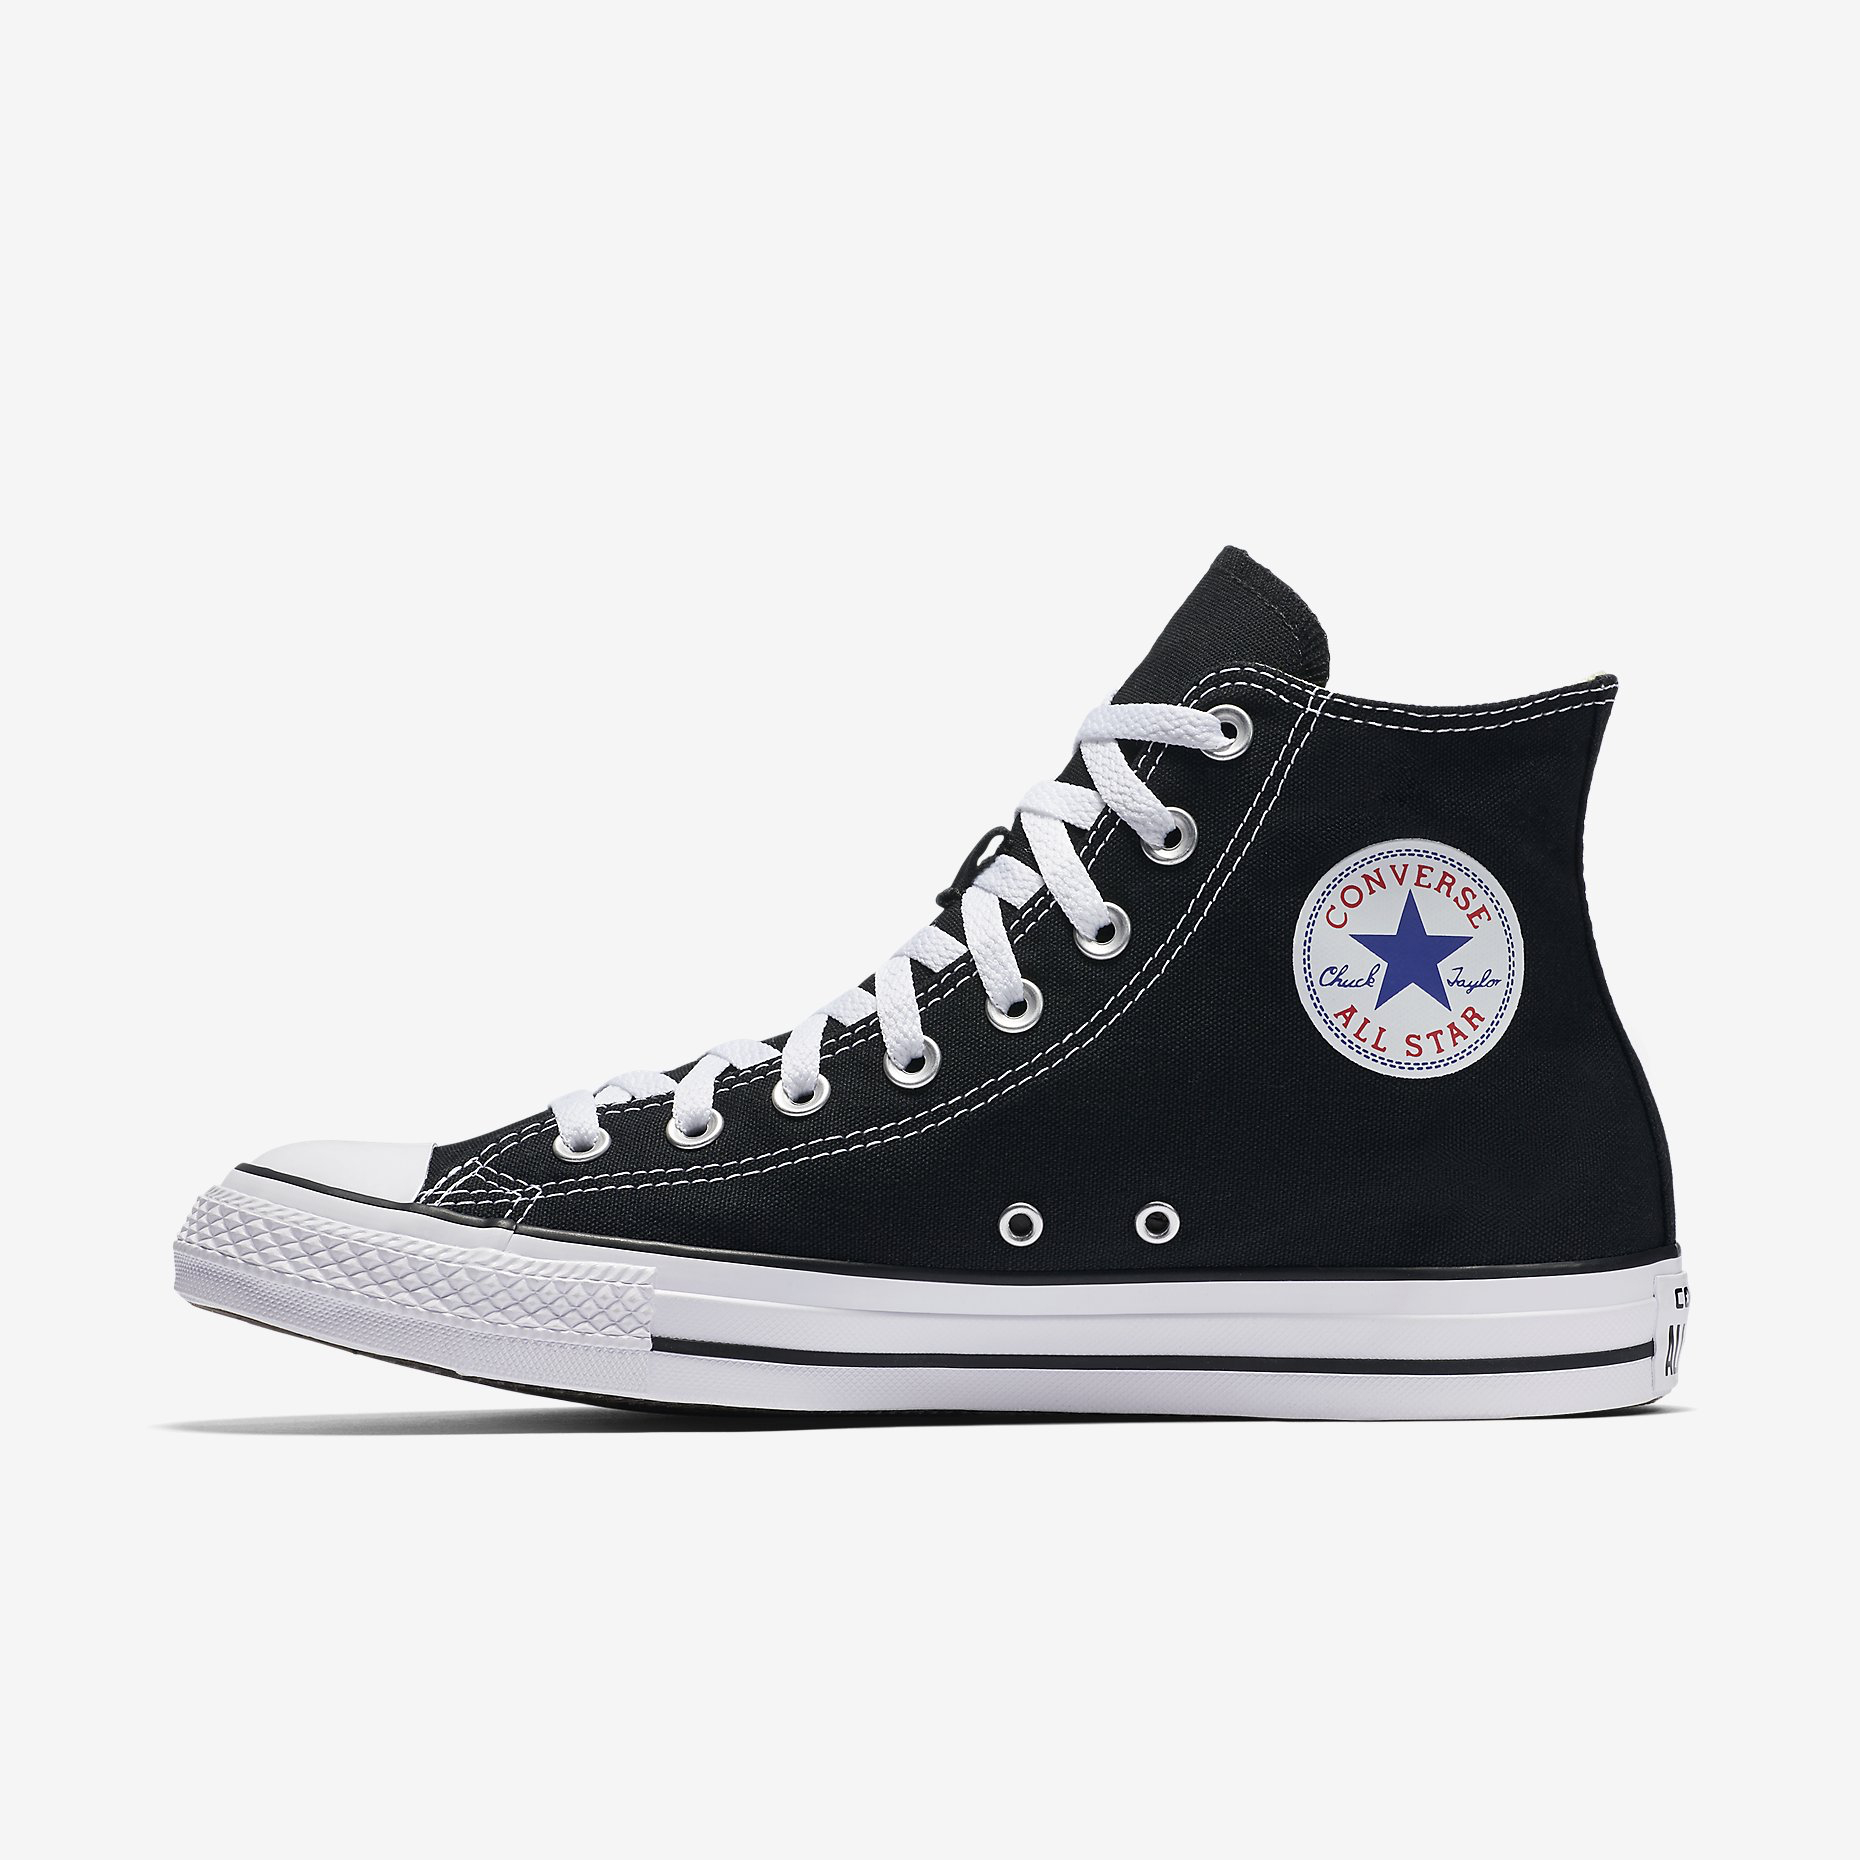 Converse Chuck Taylor All Star Womens High Top Black in 2019  4b4c95eaf